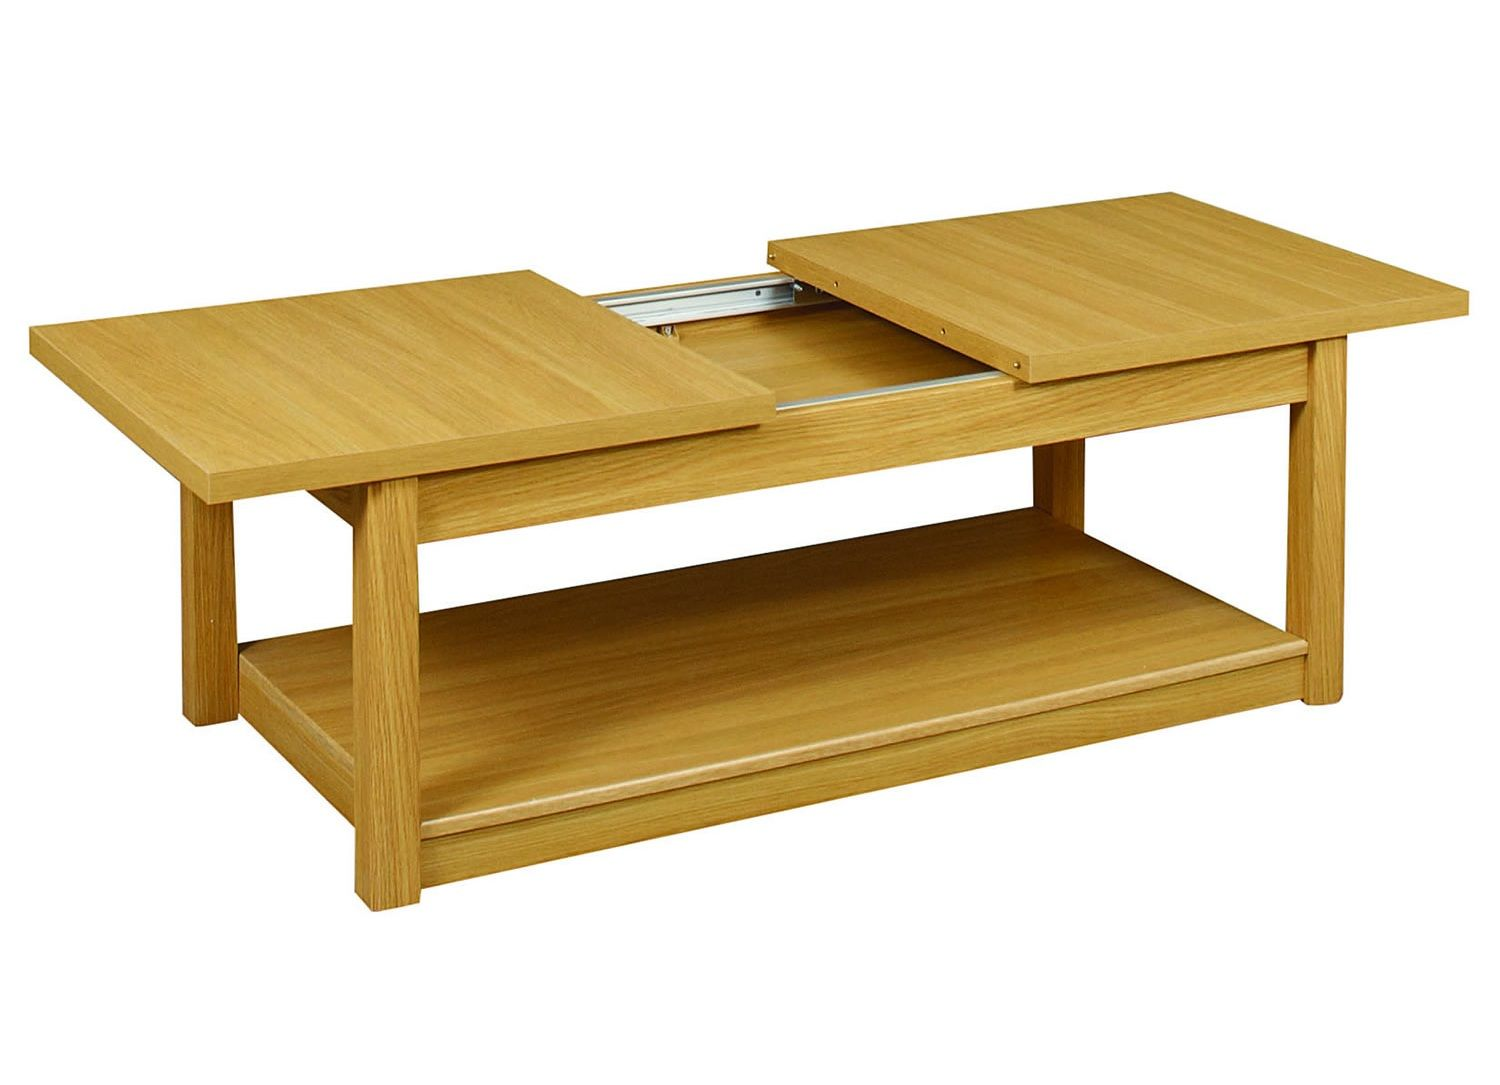 Light Oak Finished Coffee Table With Useful Storage Under Its Clever Slide Open Top 235 99 Www Worlds Co Uk P Huxley Htm